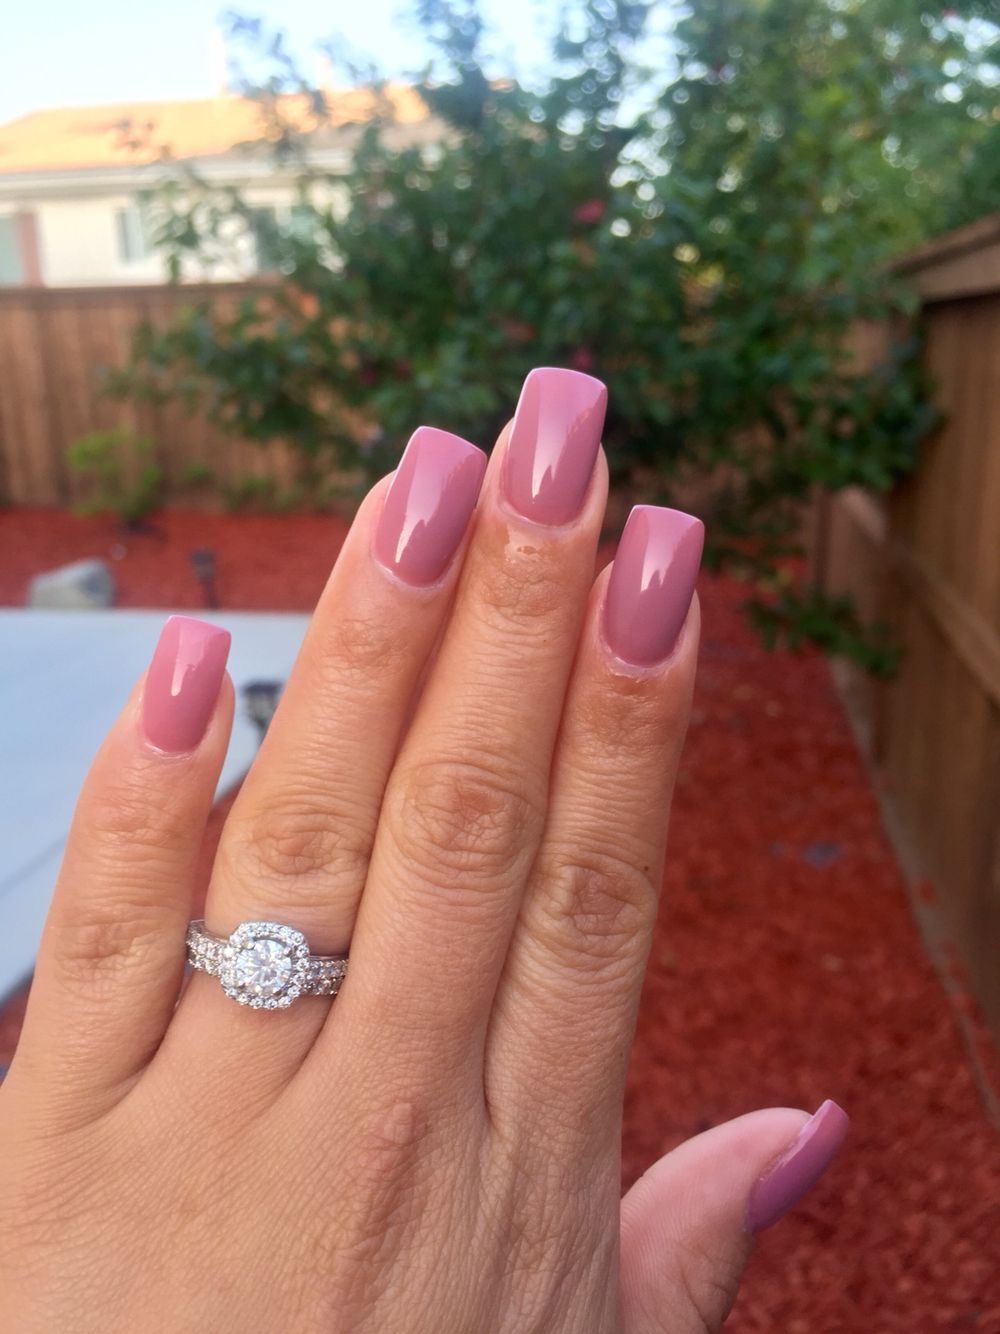 Removal of 3 month acrylics and a new set with light pink gel polish ...